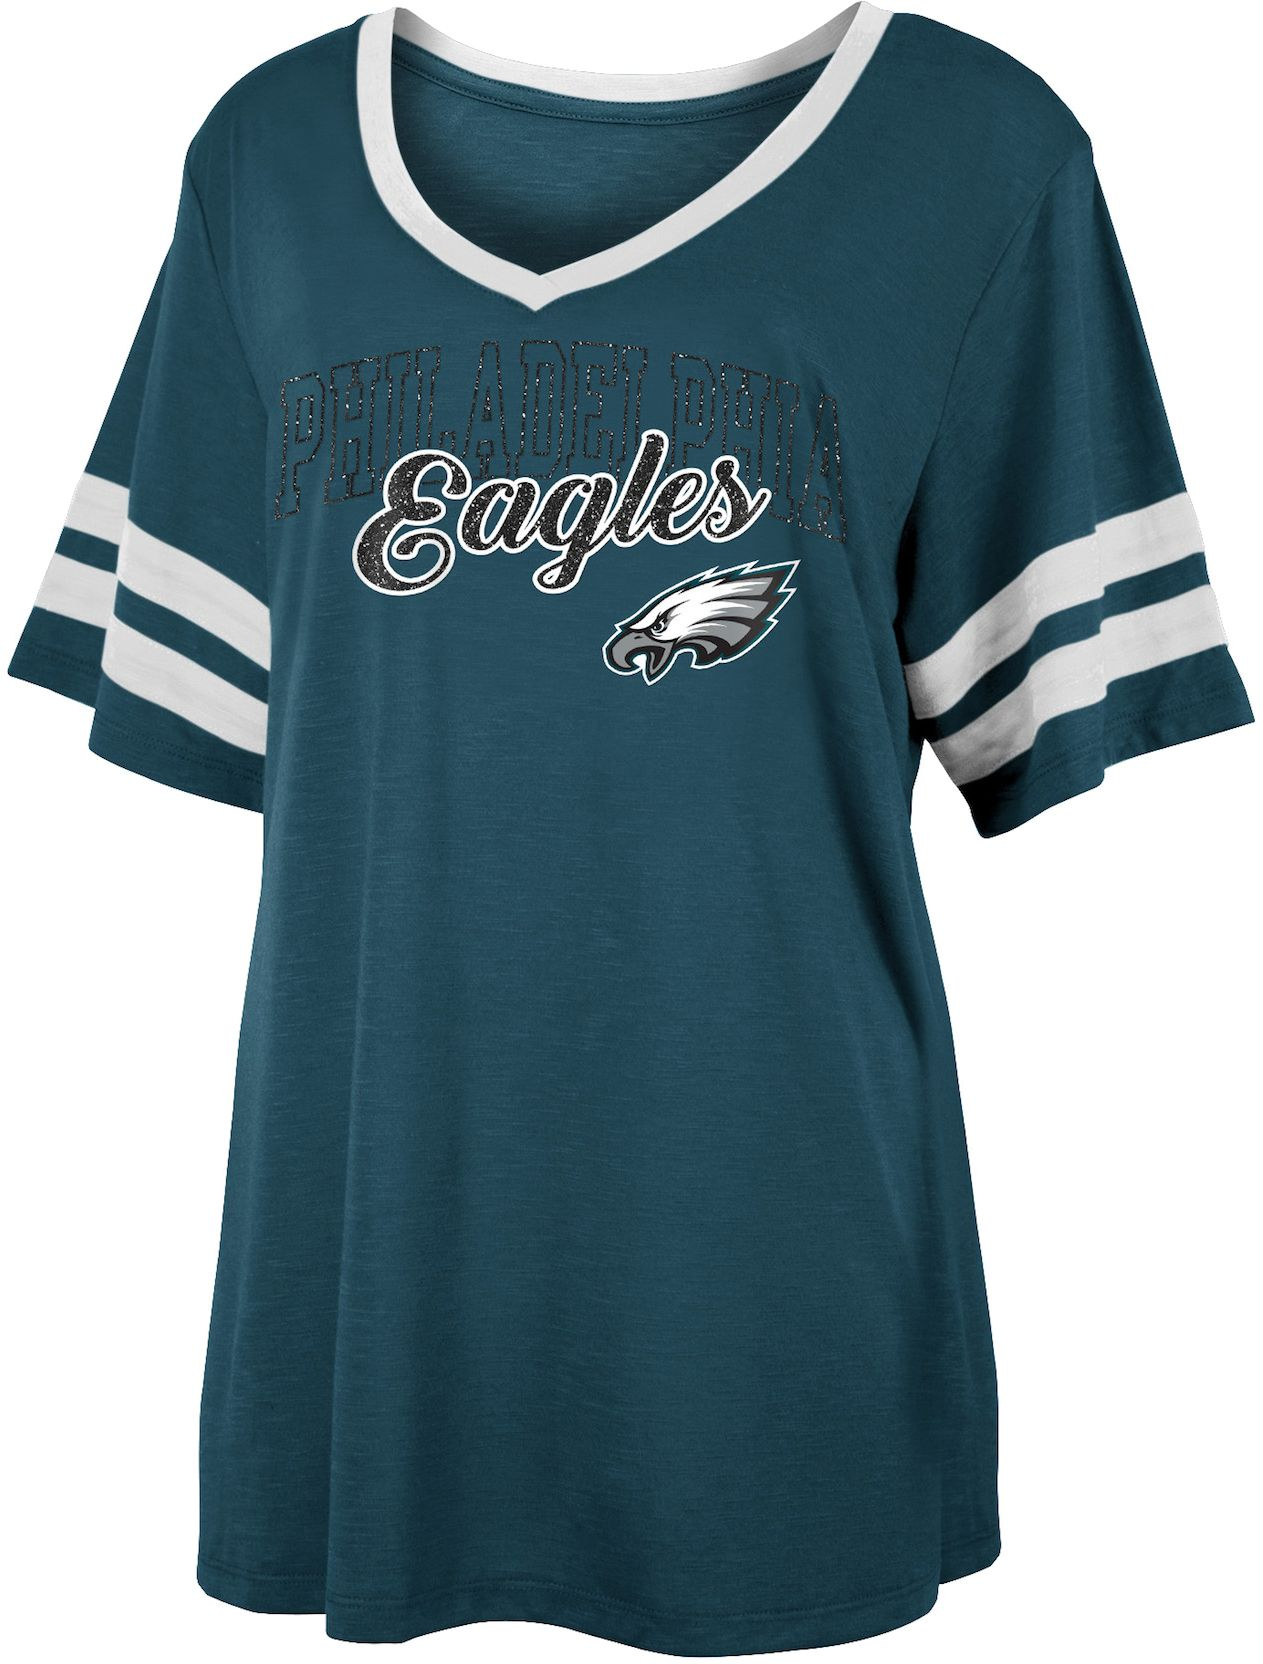 women's philadelphia eagles jersey